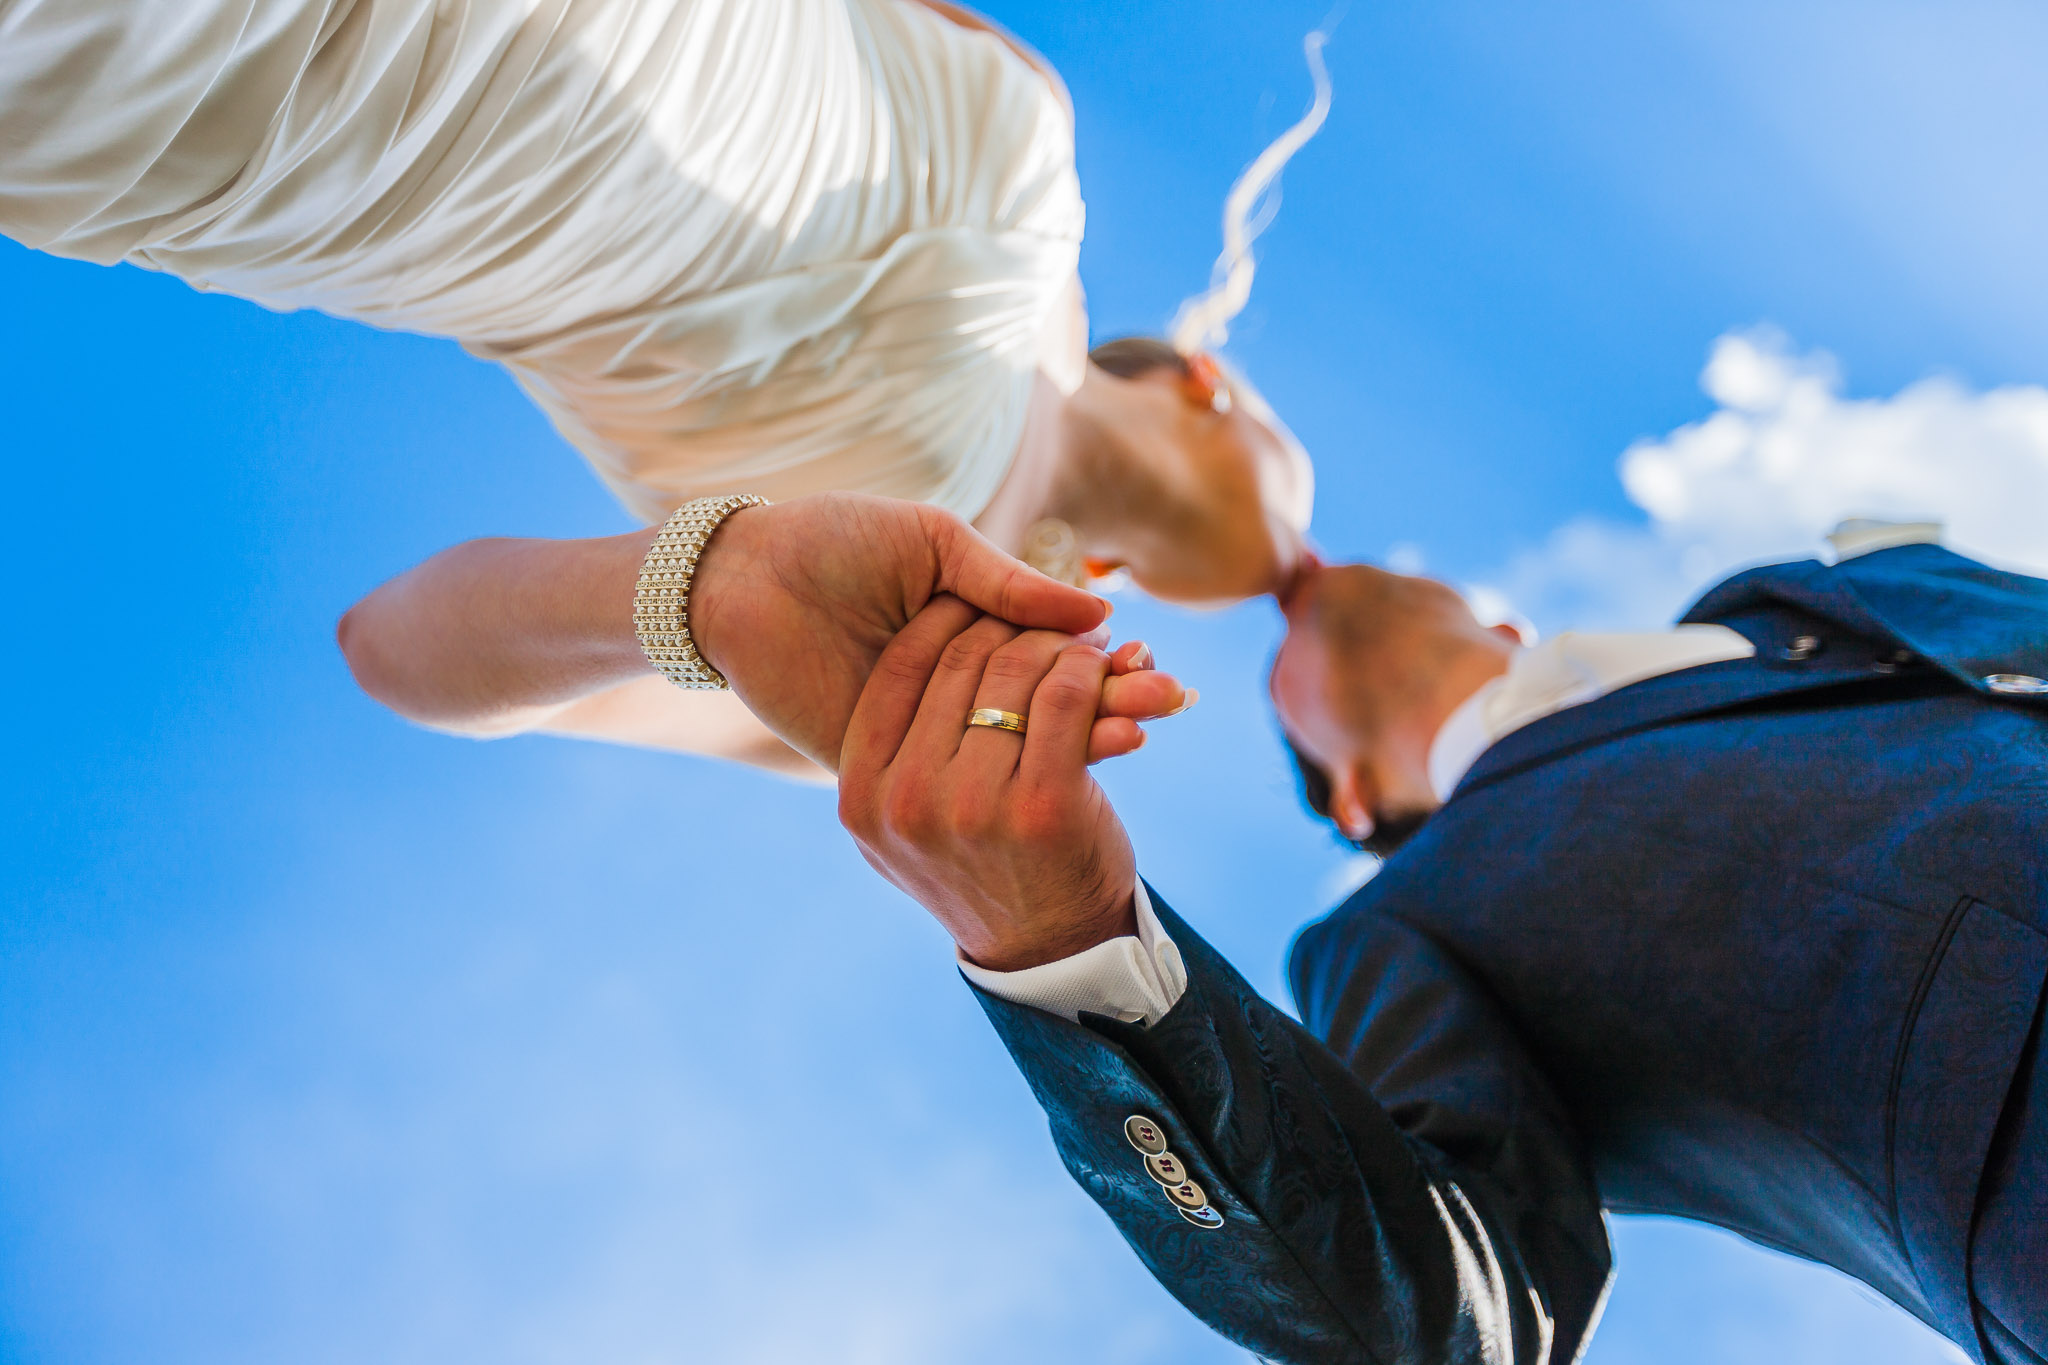 bride and groom holding hands kissing against a blue sky